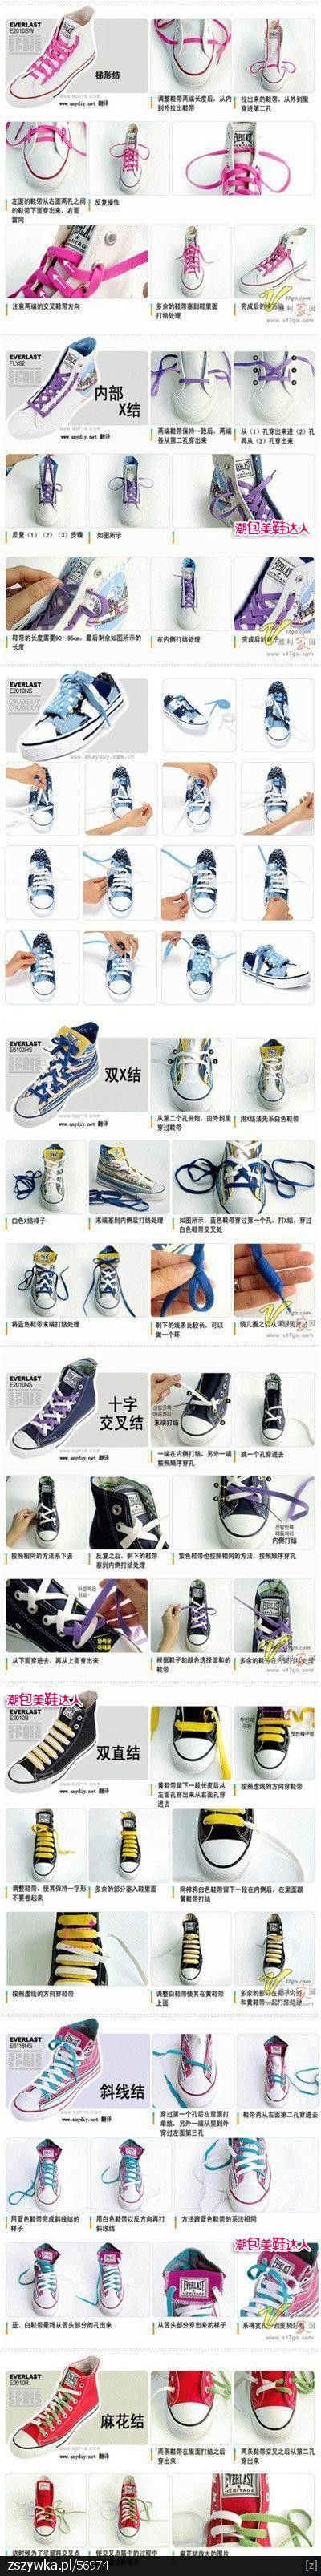 trampki: Ideas, Shoelace Style, Kids Stuff, Clothing, Ties, 帆布鞋 一定, Kategorii Diy, Winter Boots, Cool Shoes Lace